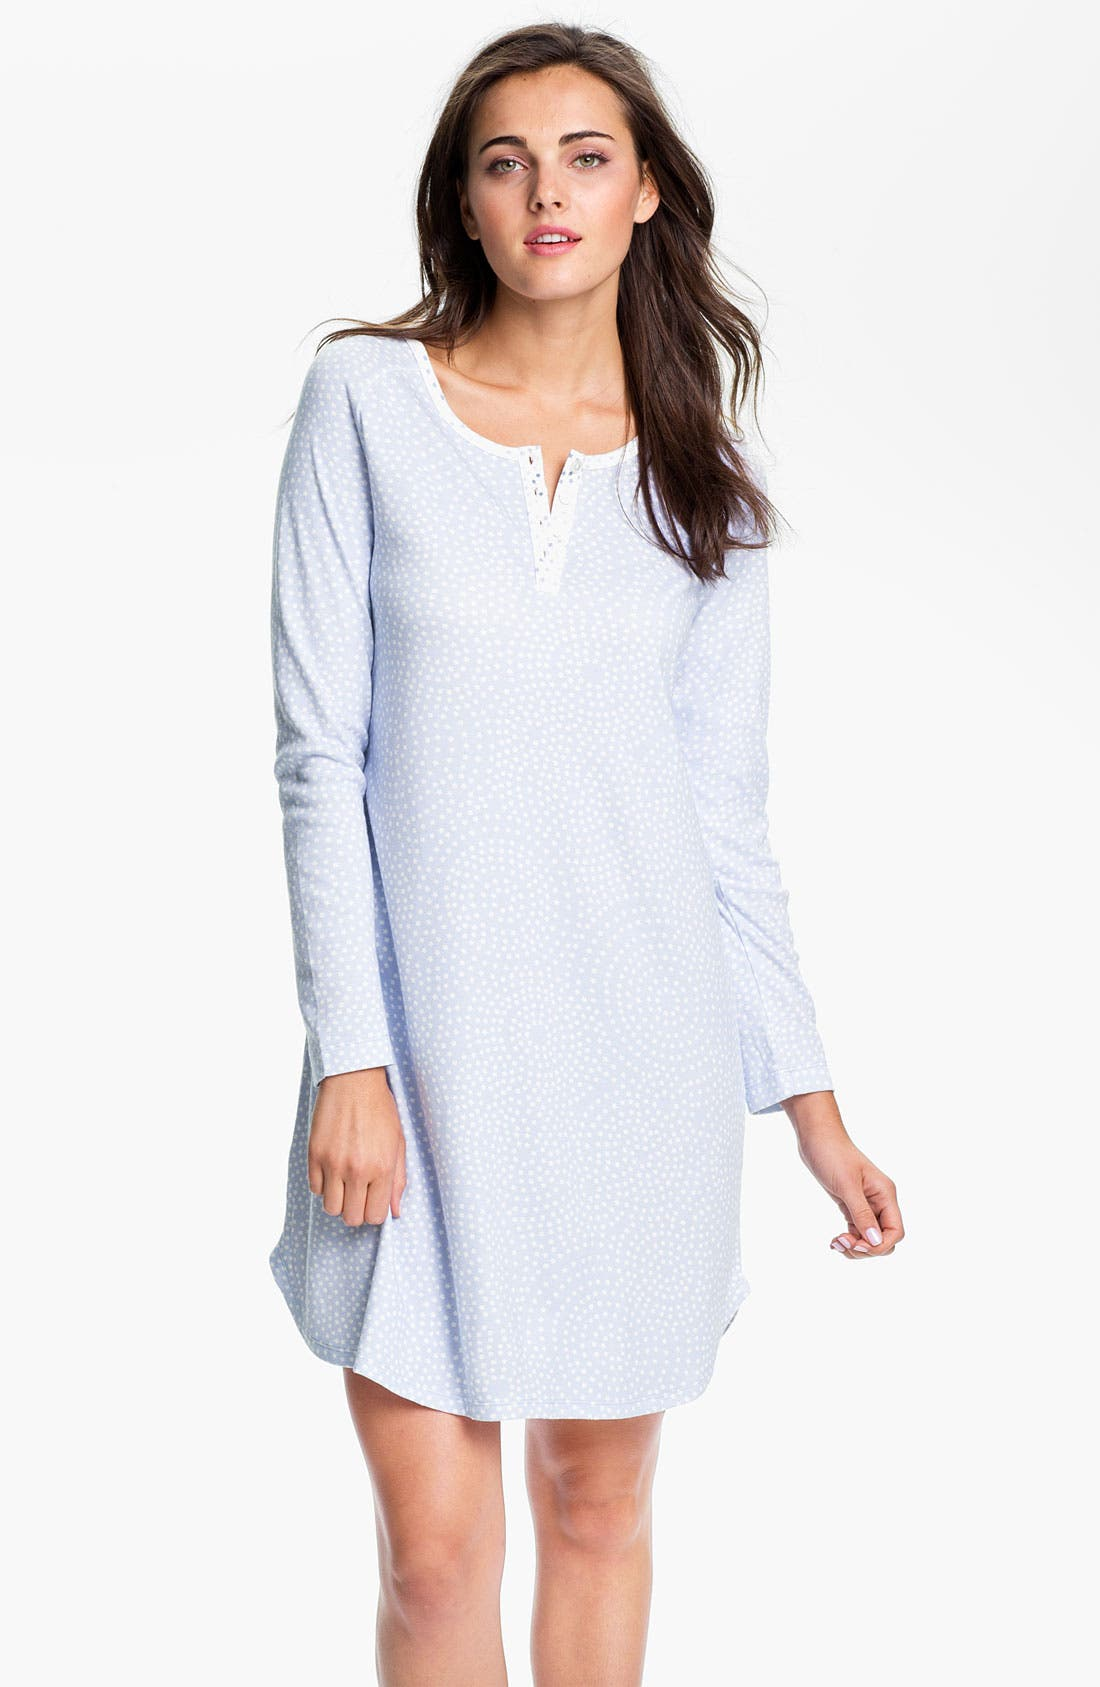 Main Image - Carole Hochman Designs Interlock Knit Sleep Shirt